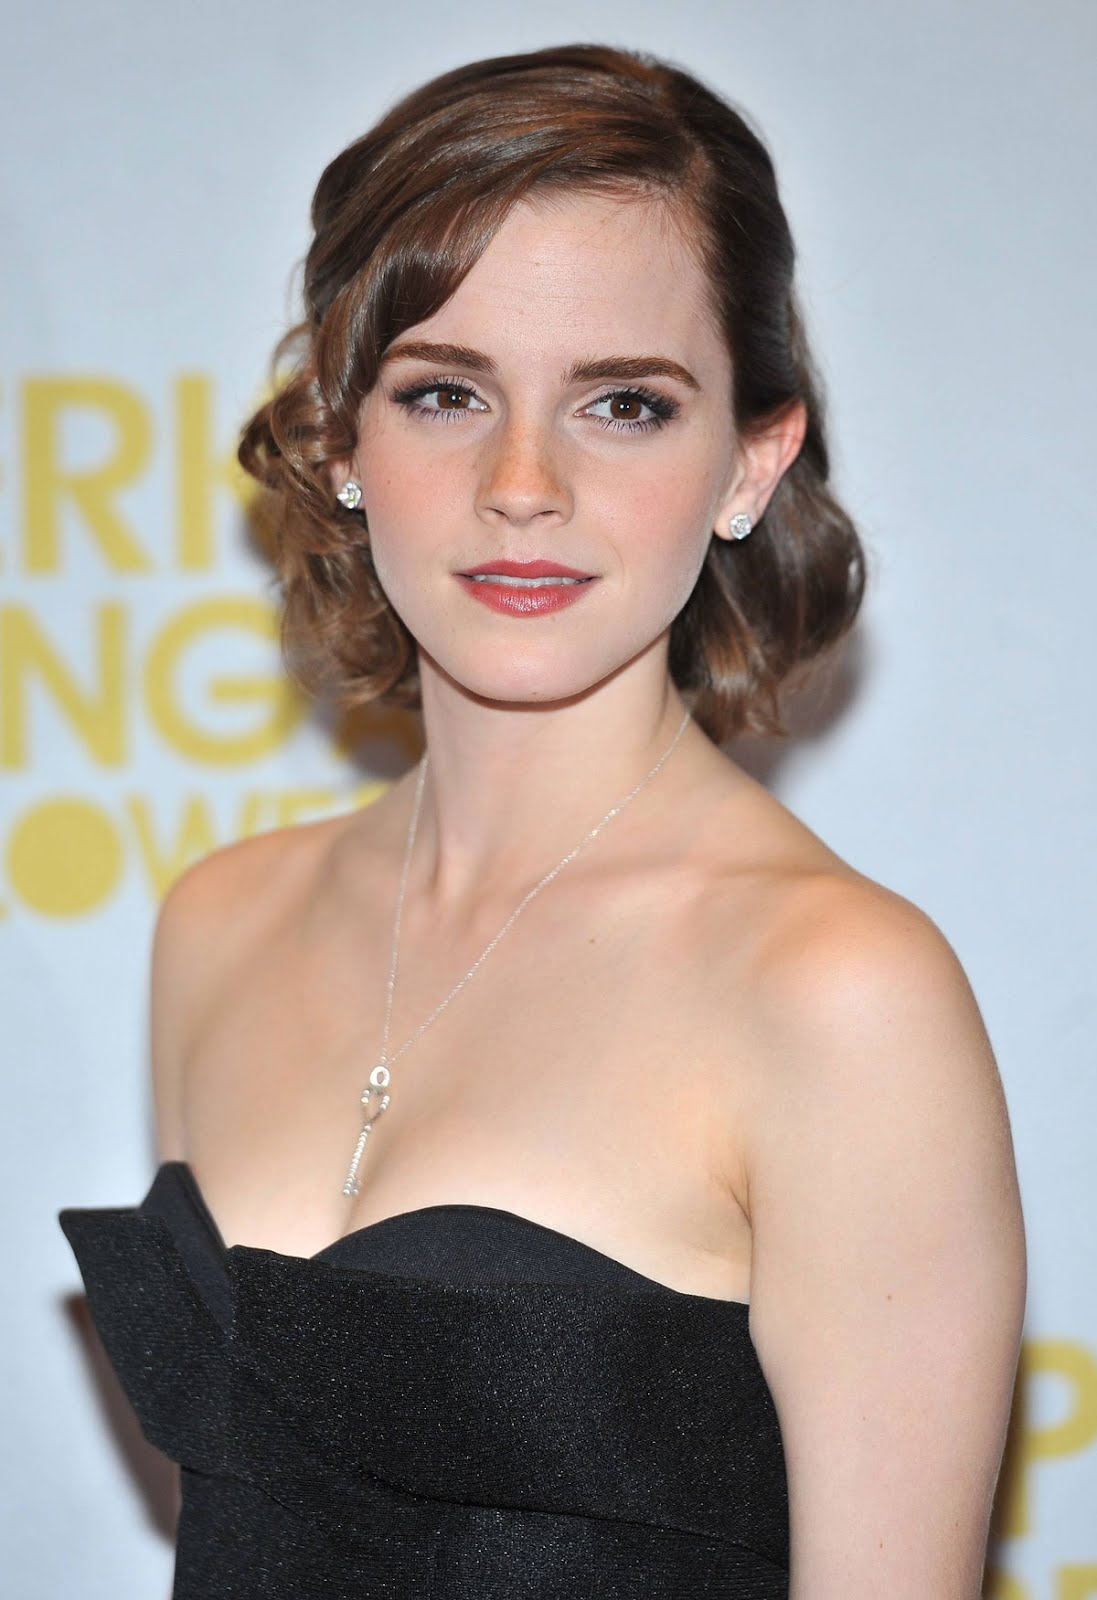 http://1.bp.blogspot.com/-7CSWF6BN95Y/UGituyWbQhI/AAAAAAAASUg/Te1g1JdqC8g/s1600/EMMA-WATSON-at-Perks-of-Being-a-Wallflower-Premiere-in-London-5%255B1%255D-799366.jpg